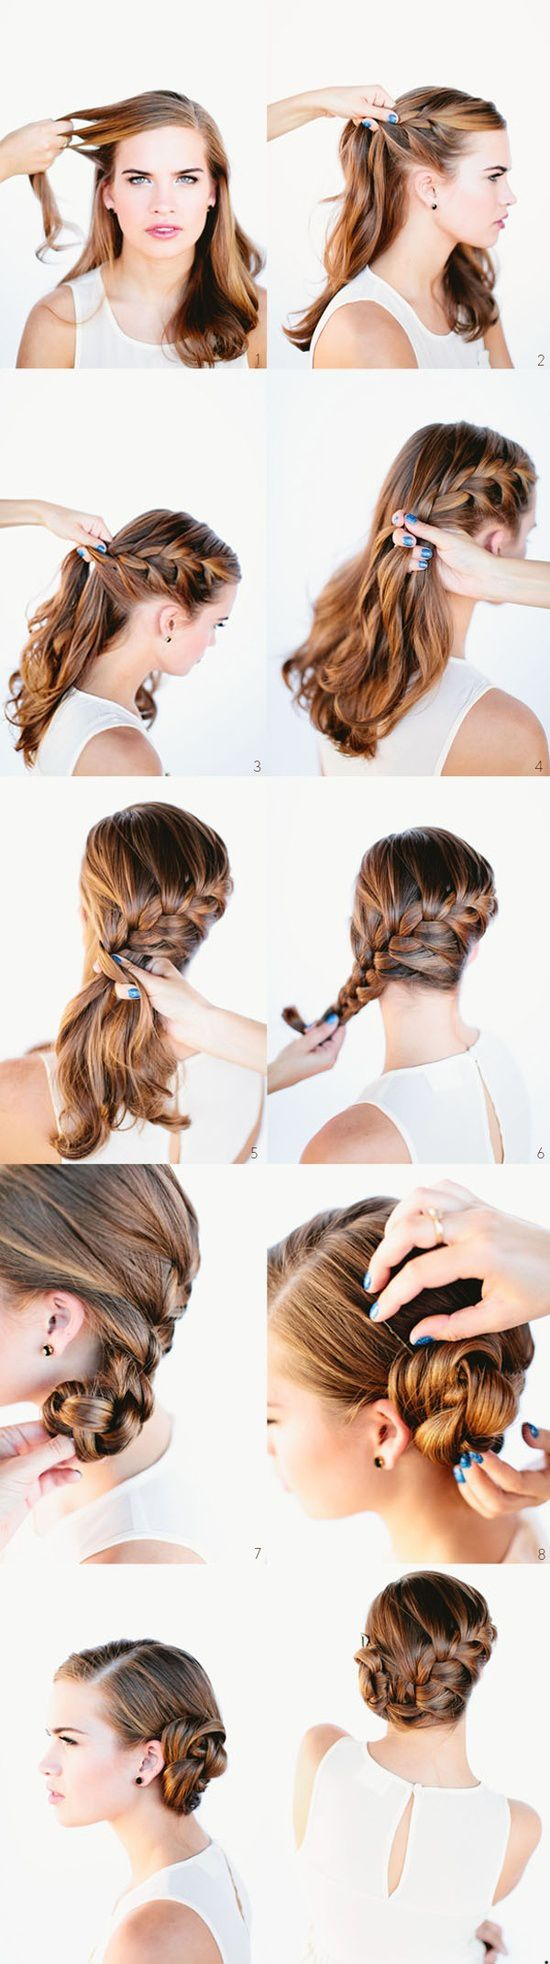 15 Stylish Buns for Your Long Hair | Updo, Indian human hair and ...